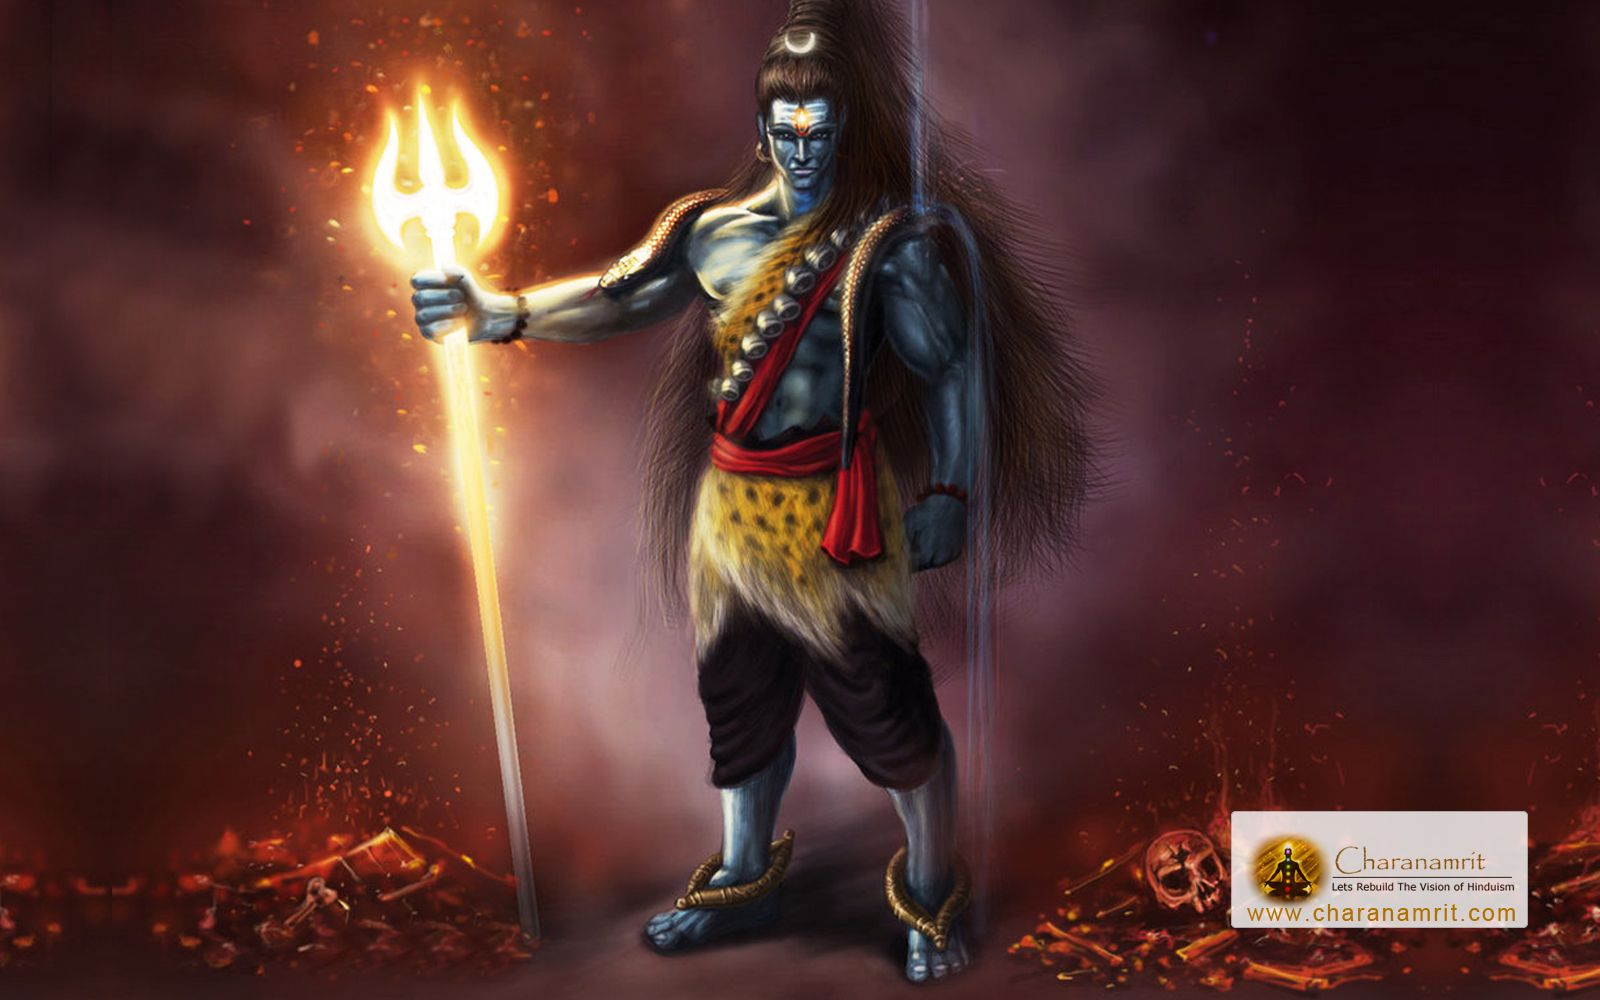 Beautiful Wallpaper Angry Shiva - 1c1d6686e928273fbe96bc751aae641b  You Should Have_899843      .jpg